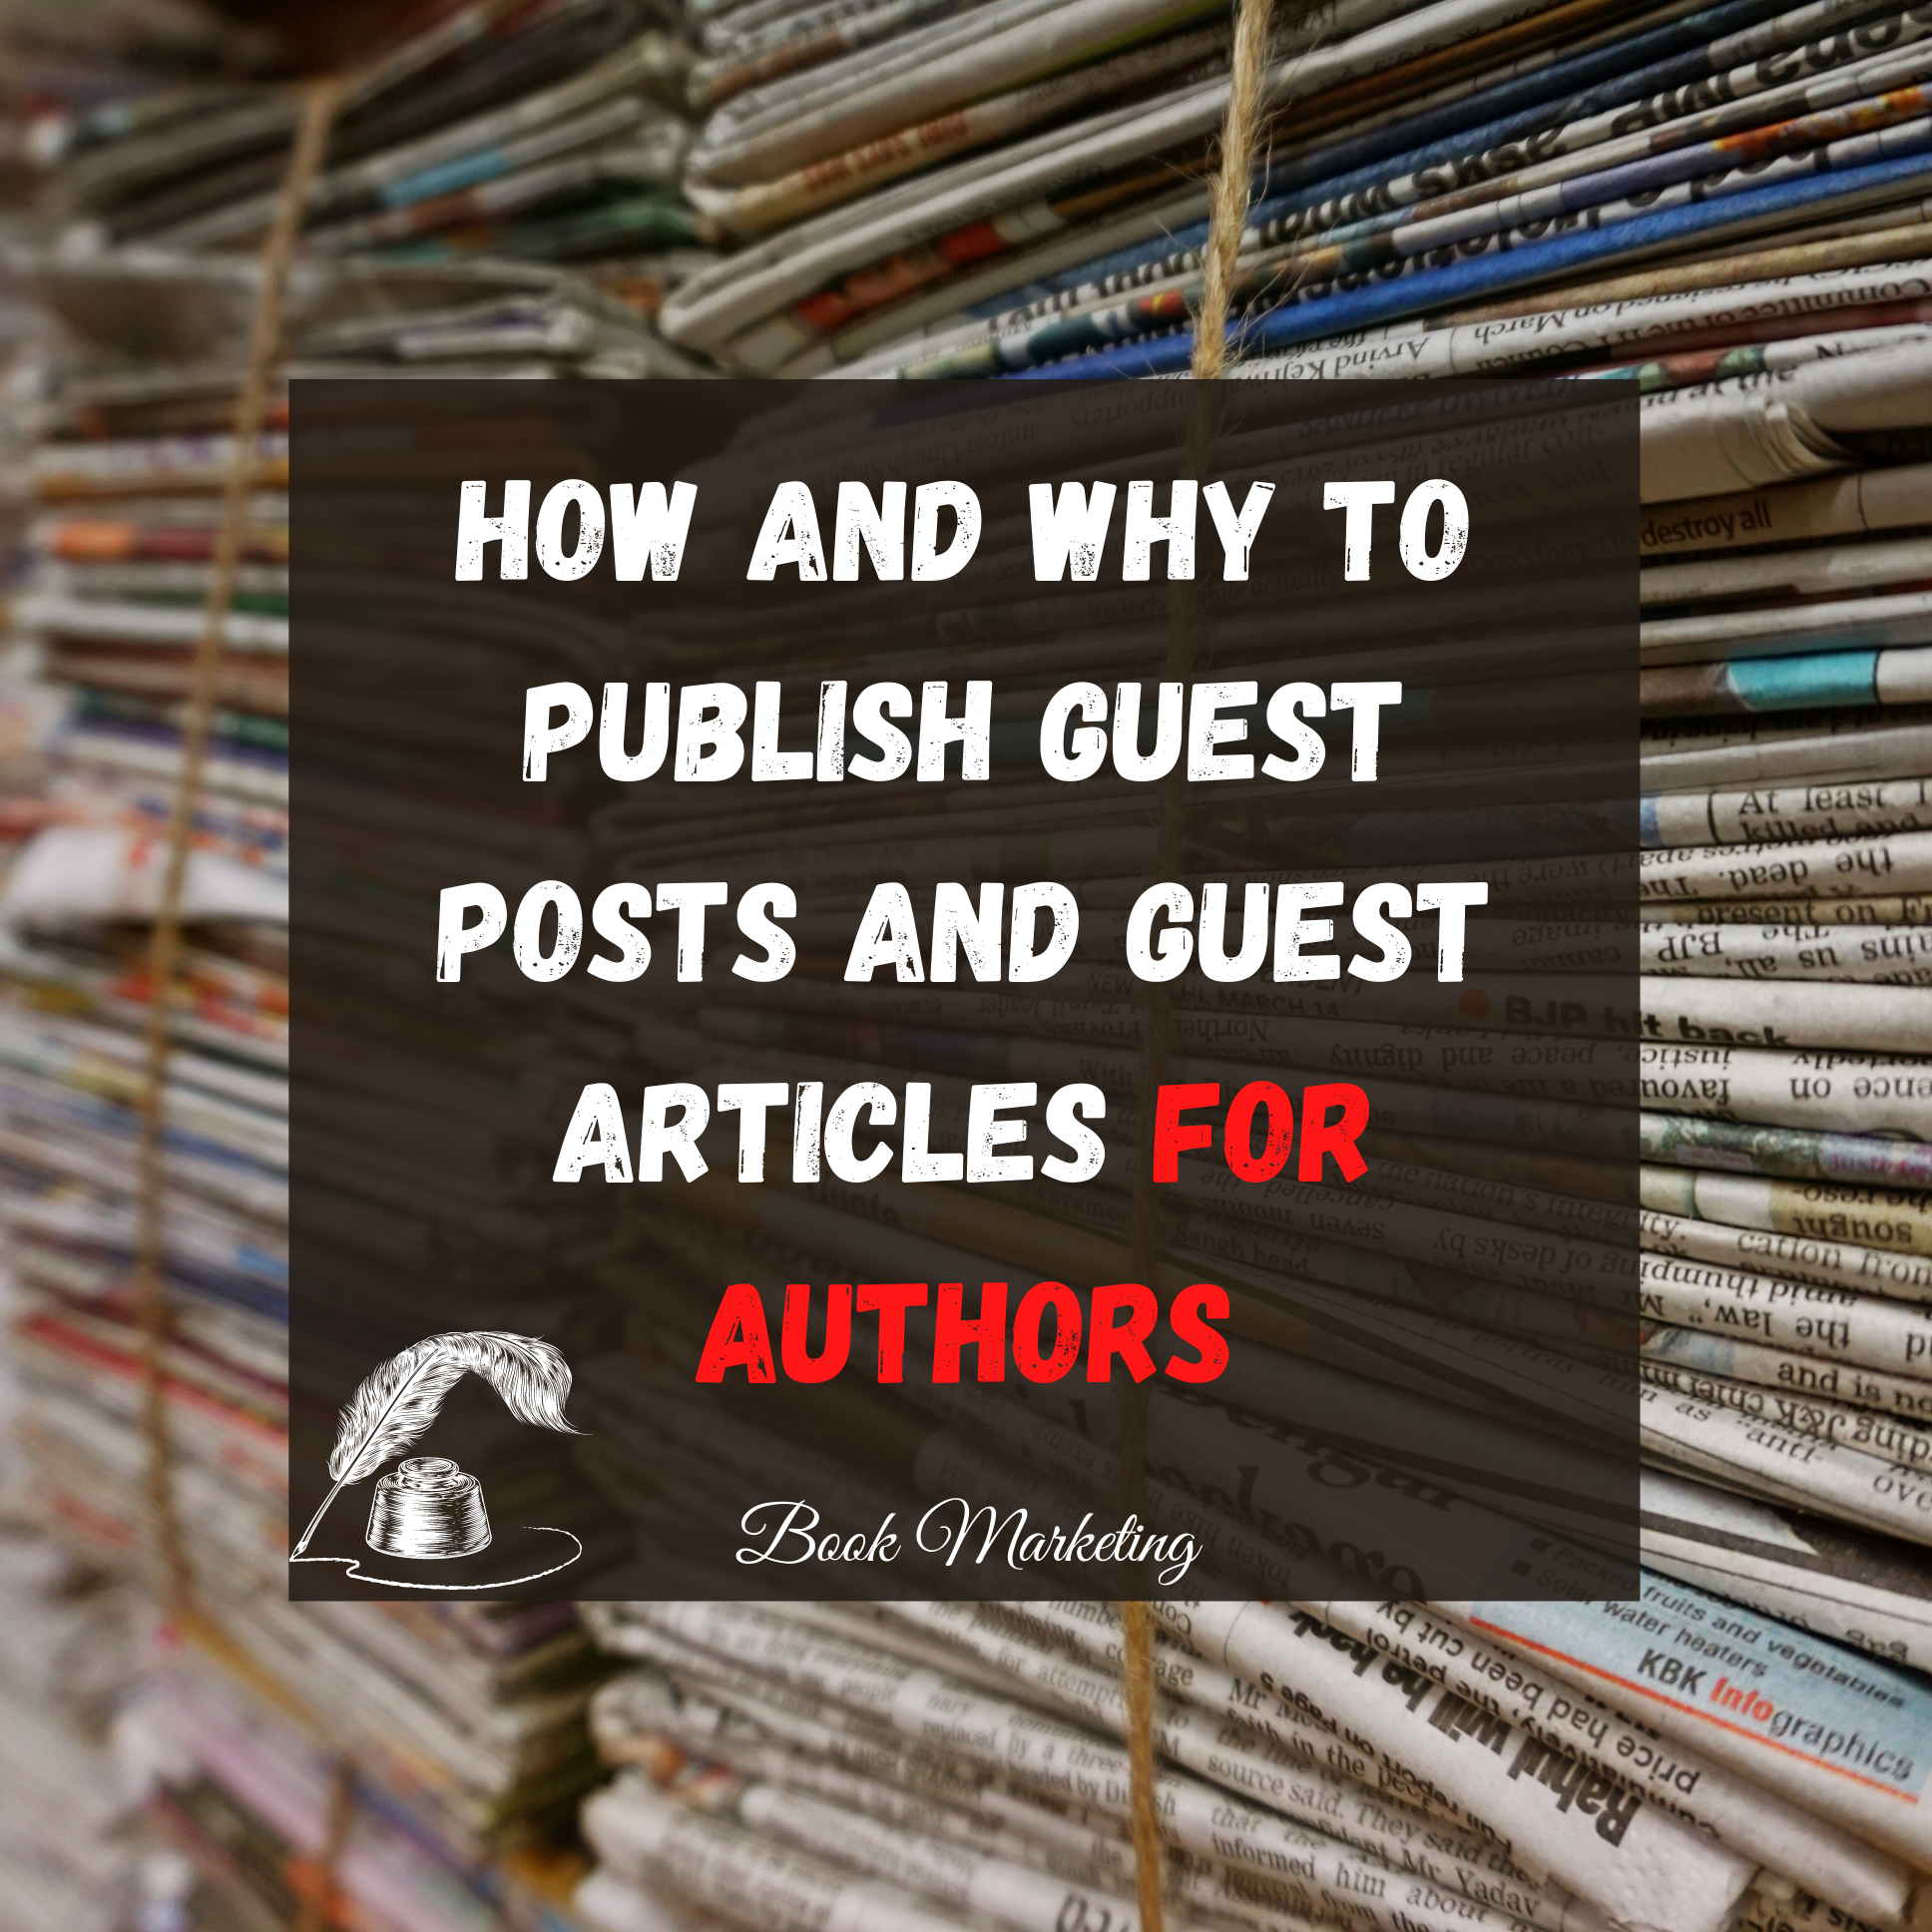 How and Why to Publish Guest Posts and Guest Articles for Authors